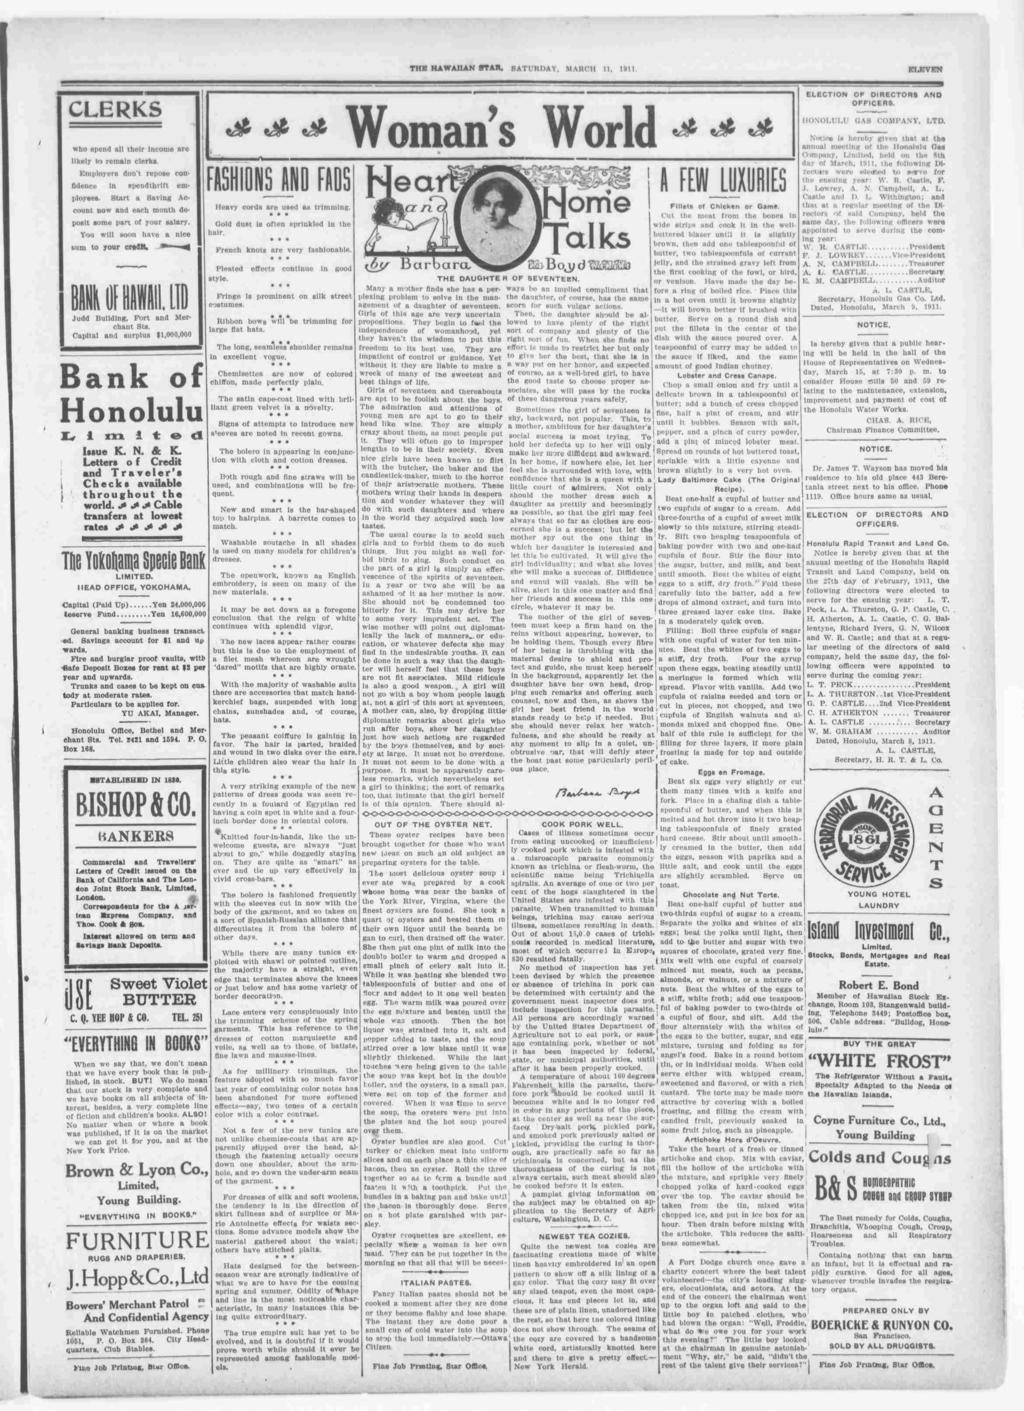 TUB HAWAAN STAR, SATURDAY, MARCH 11, 1911. ELEVEN CLERKS w ELECTON OF DRECTORS AND OFFCERS. ft S HONOLULU OAS COMPANY, LTD.